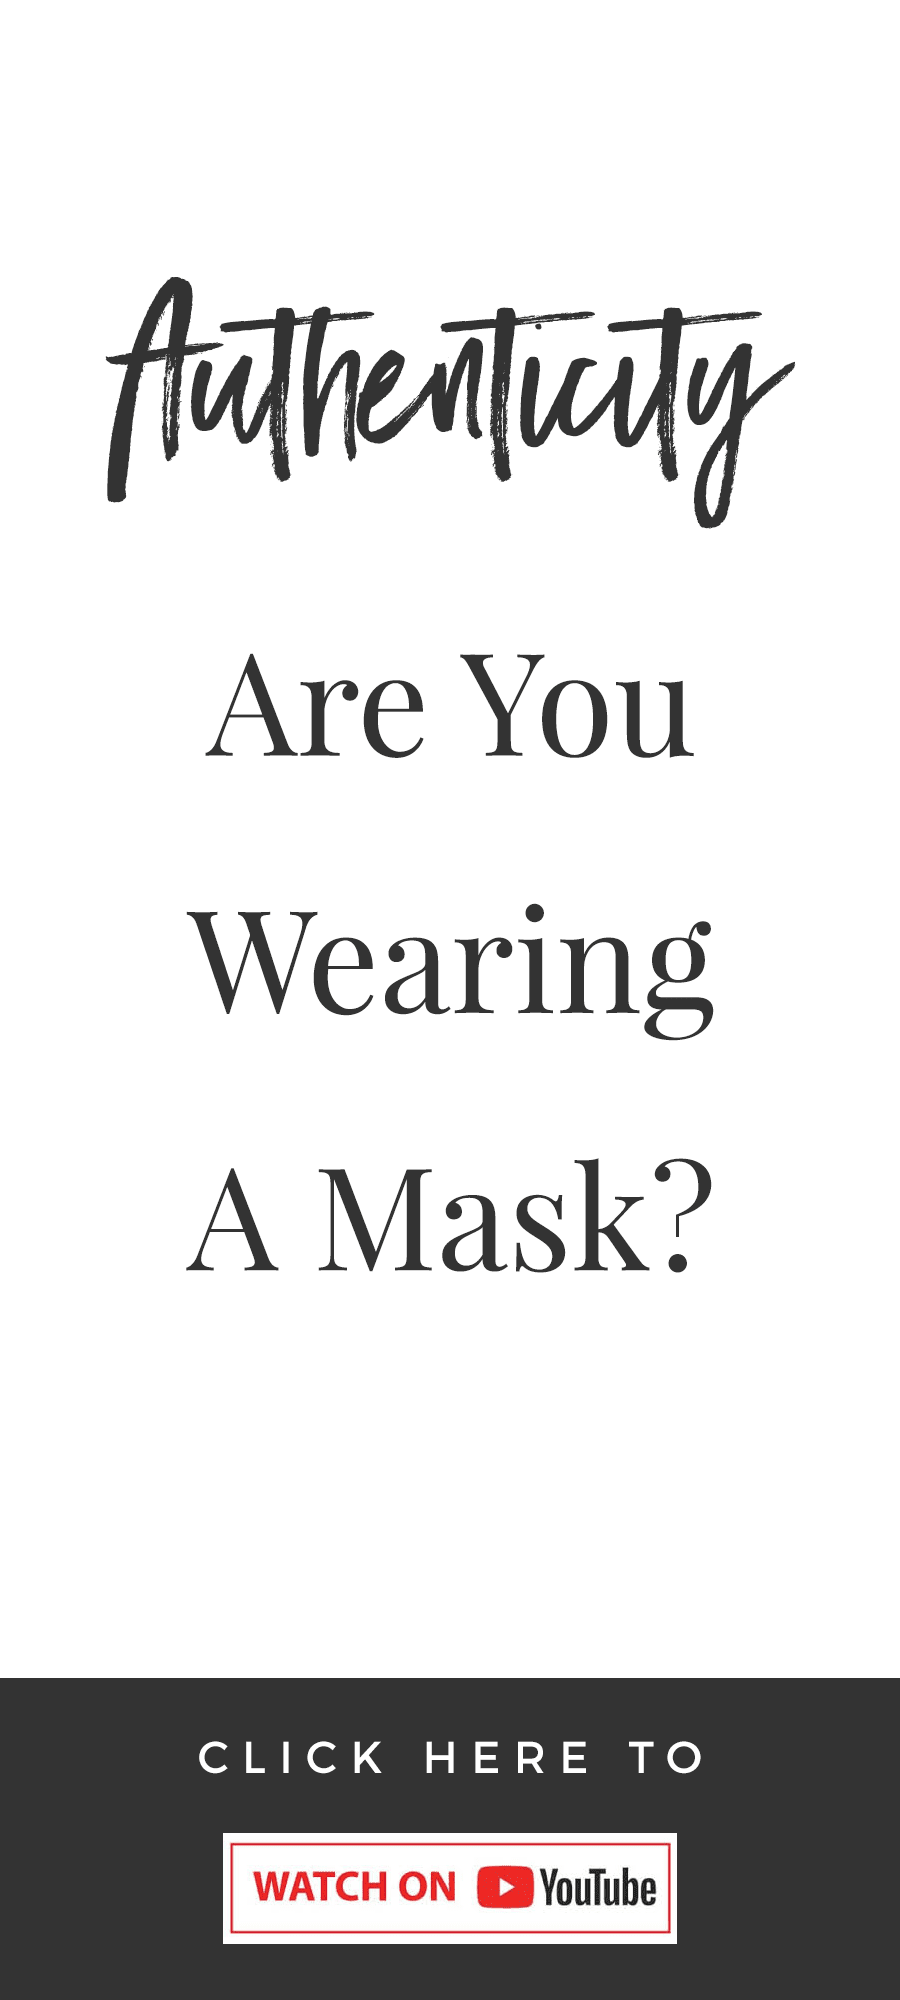 Authenticity: Are You Wearing A Mask?